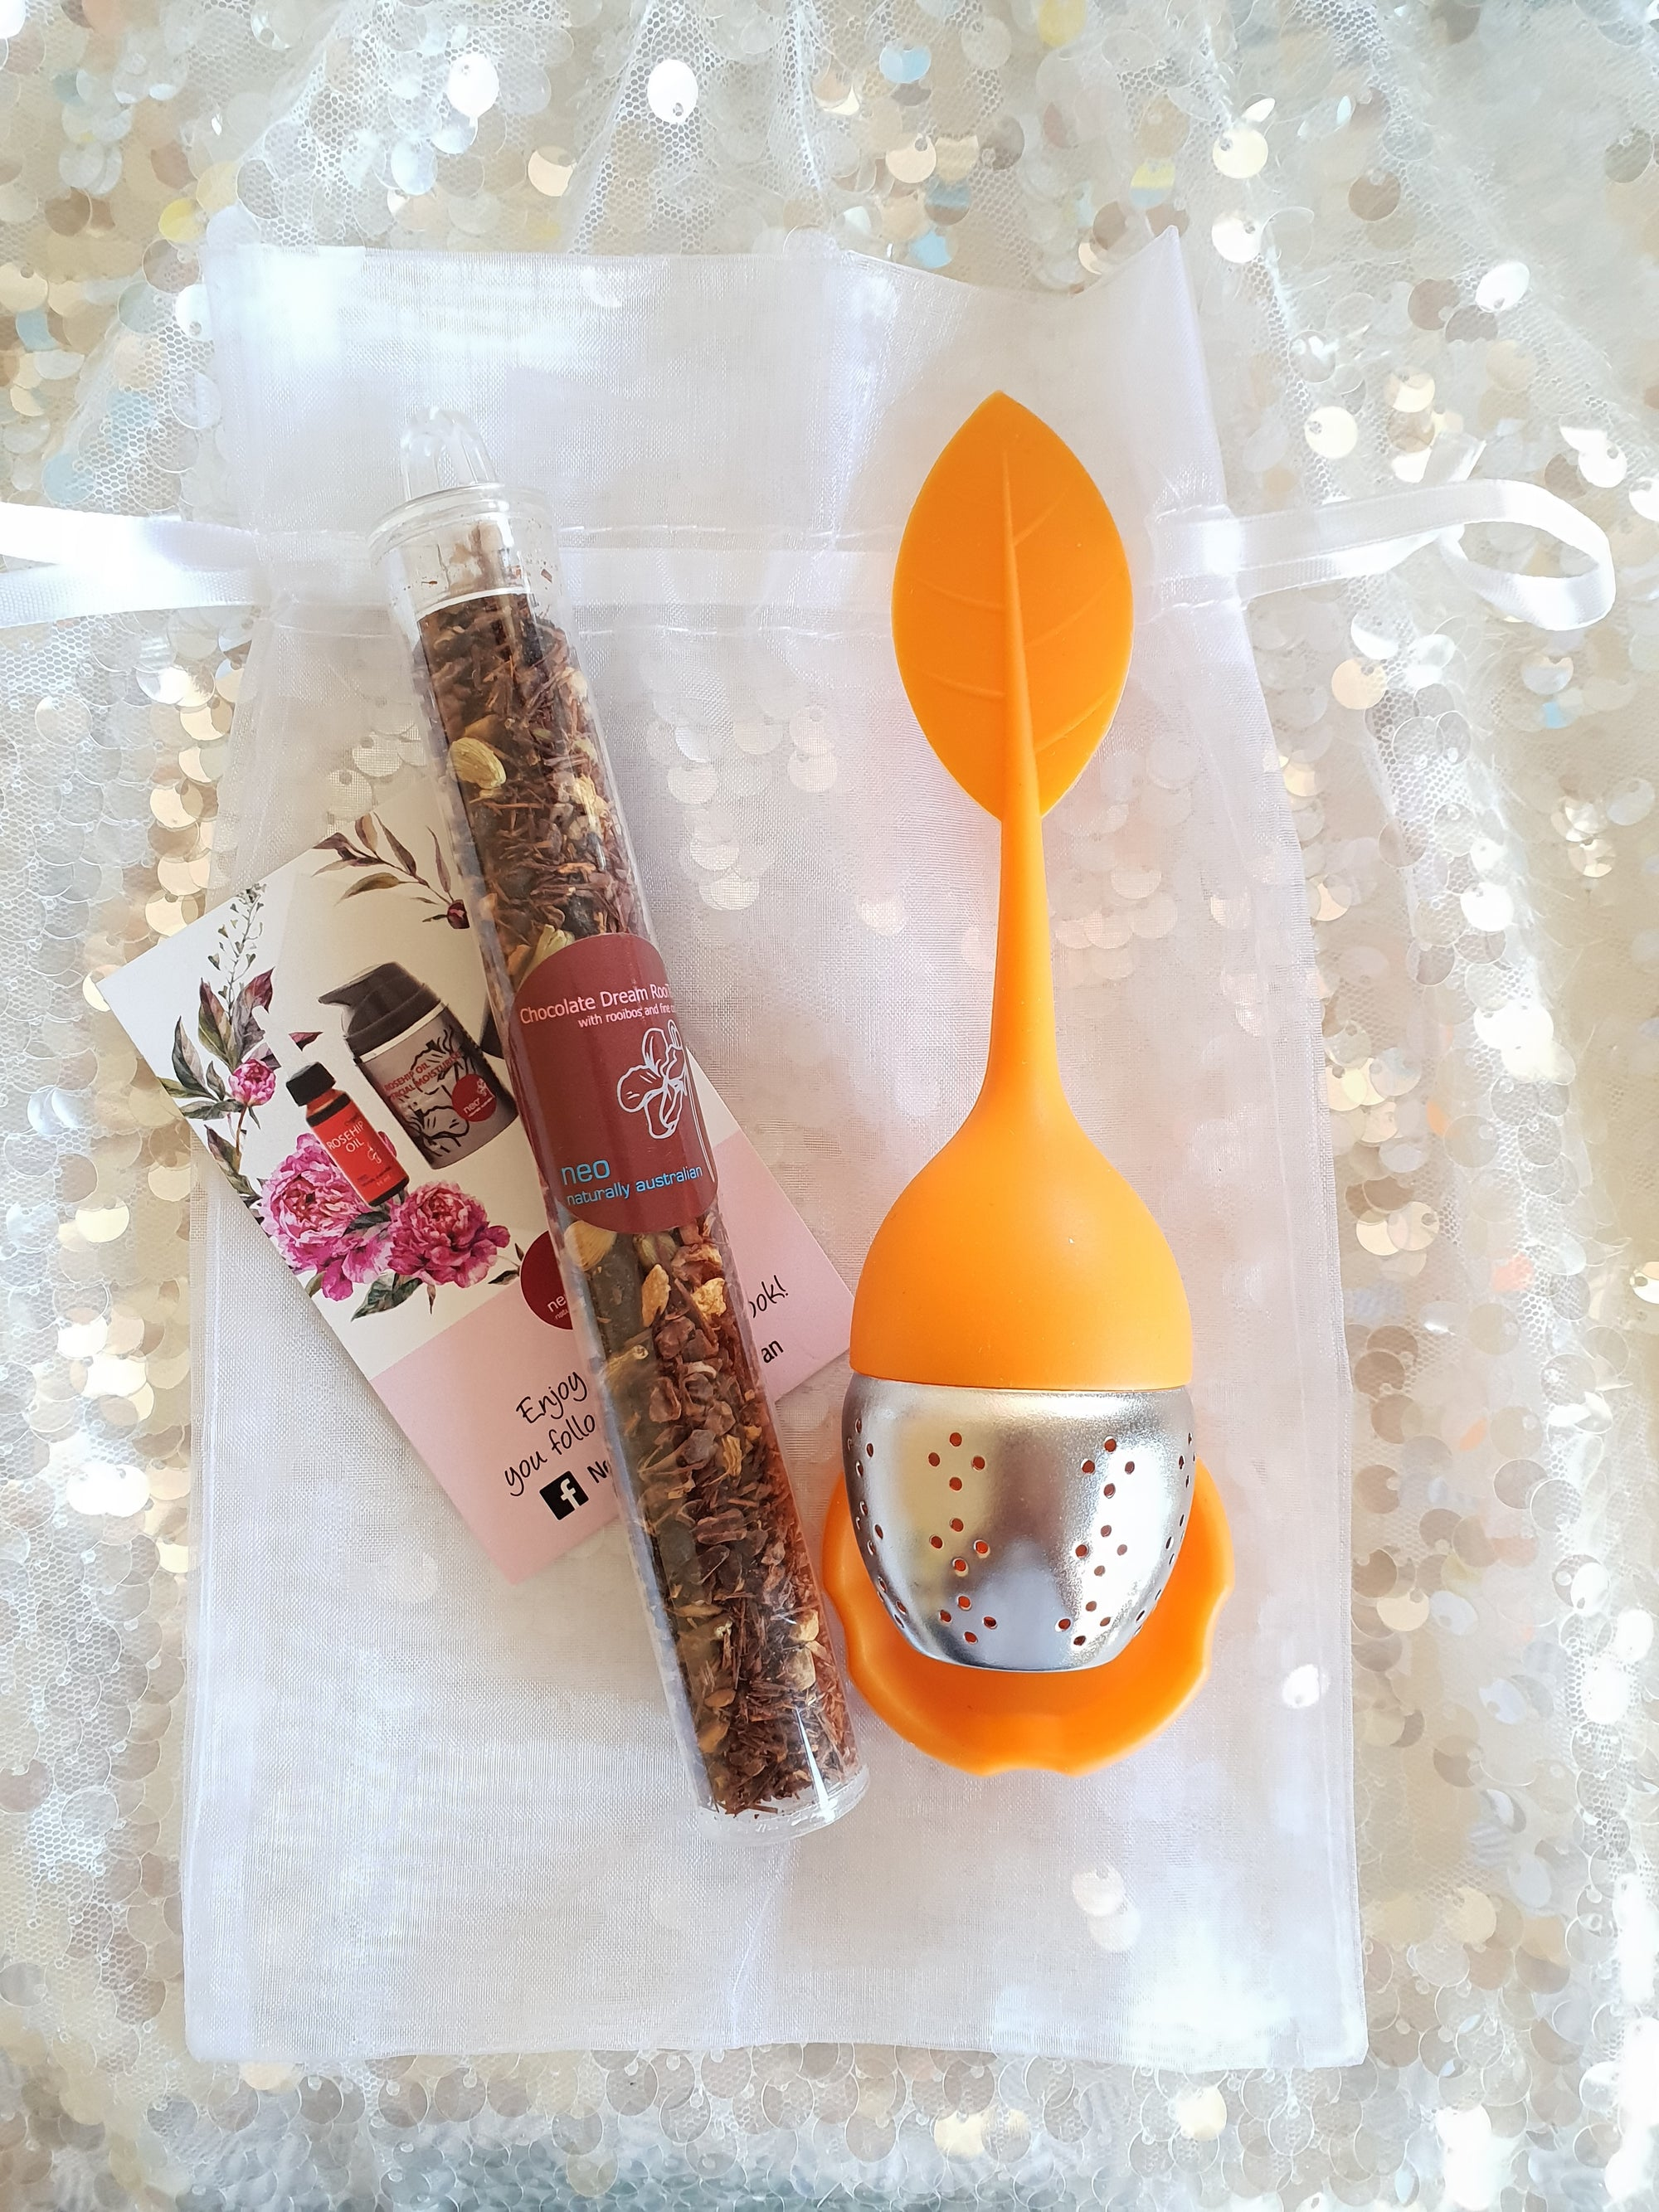 Rooibos Tea Chocolate Dream Tea Sip Kit